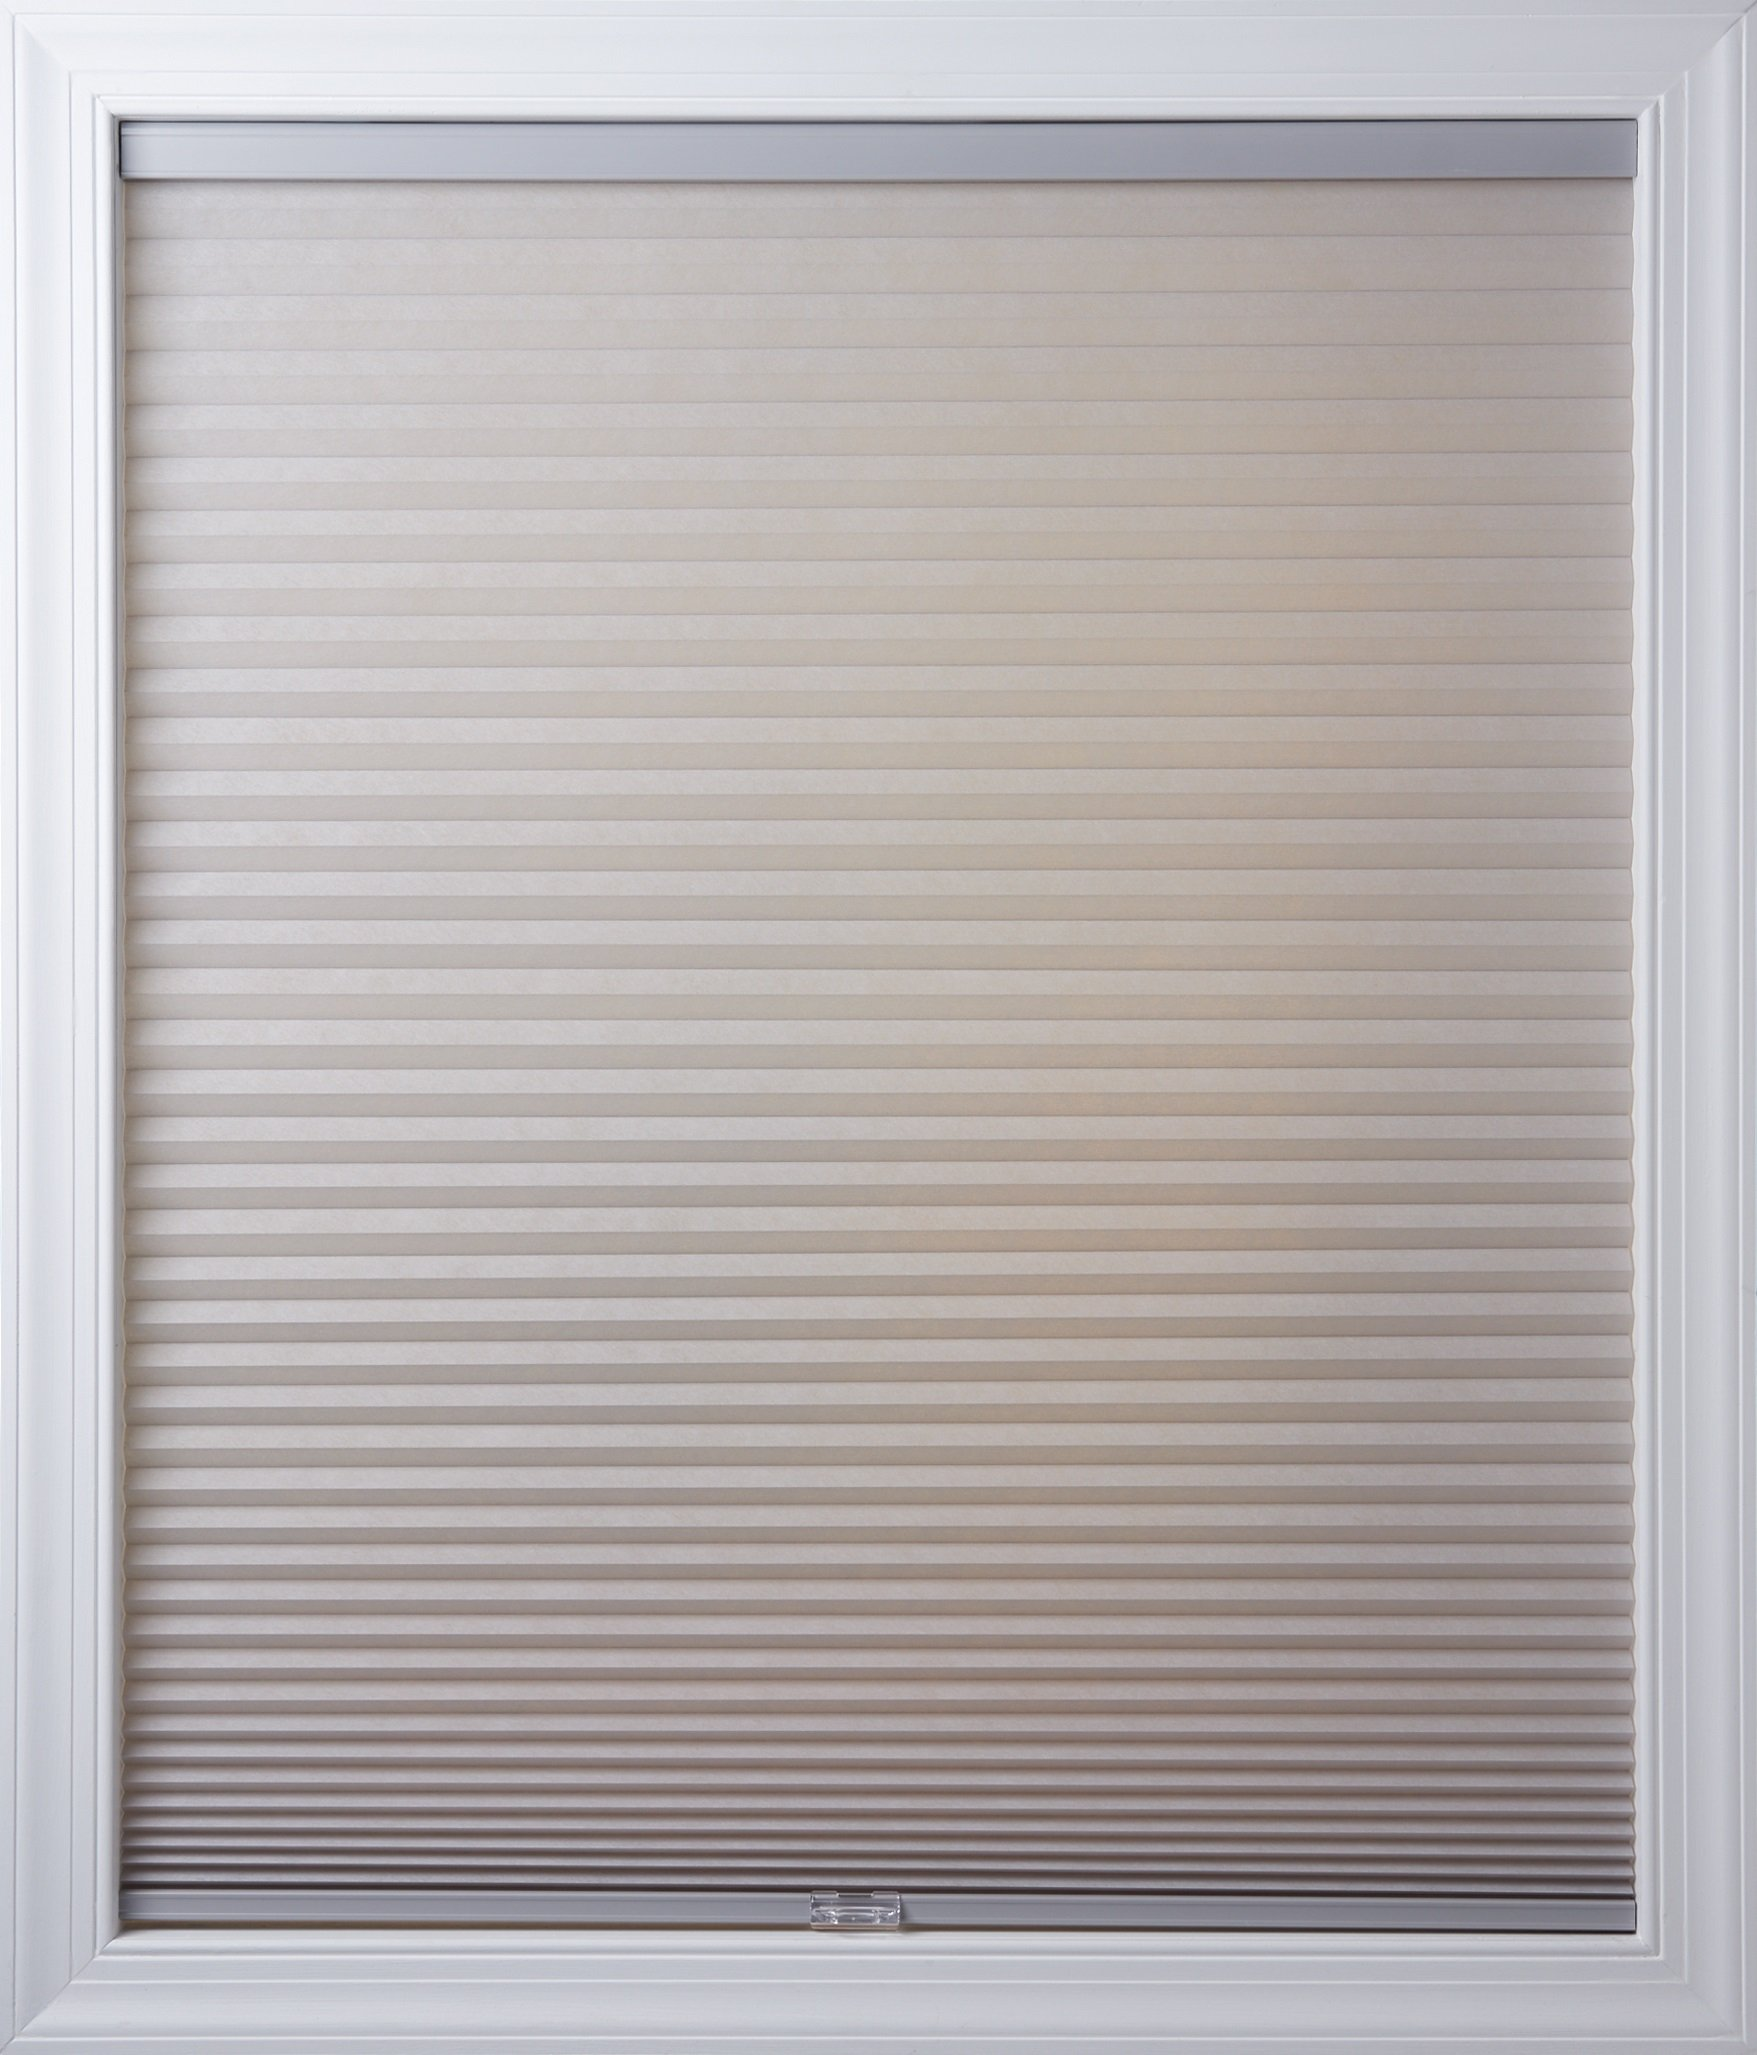 New Age Blinds Light Filtering Inside Frame Mount Cordless Cellular Shade 46-1/2 x 72-Inch Gray Sheen by New Age Blinds